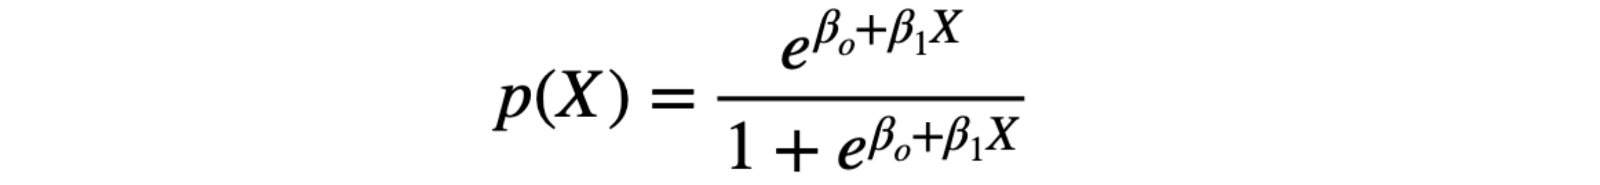 Probability of X with logistic function